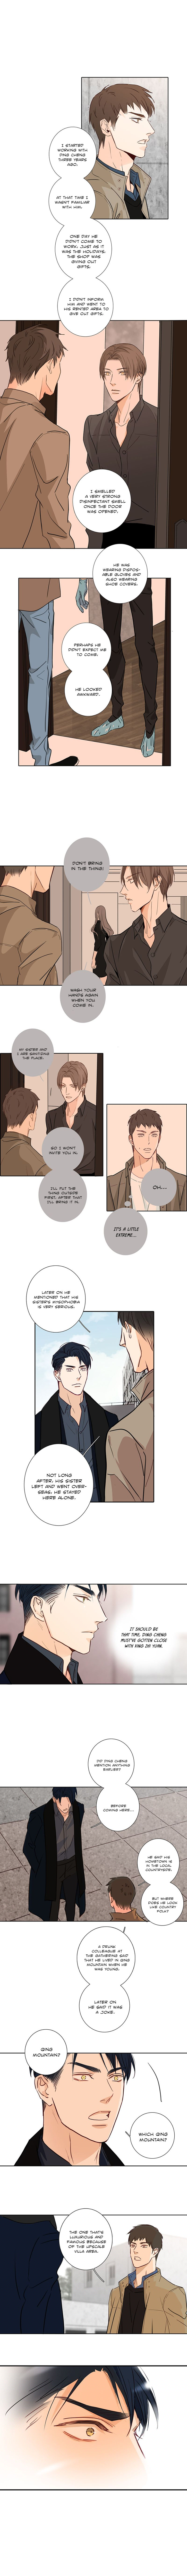 Love me in the Wilderness - chapter 18 - #2